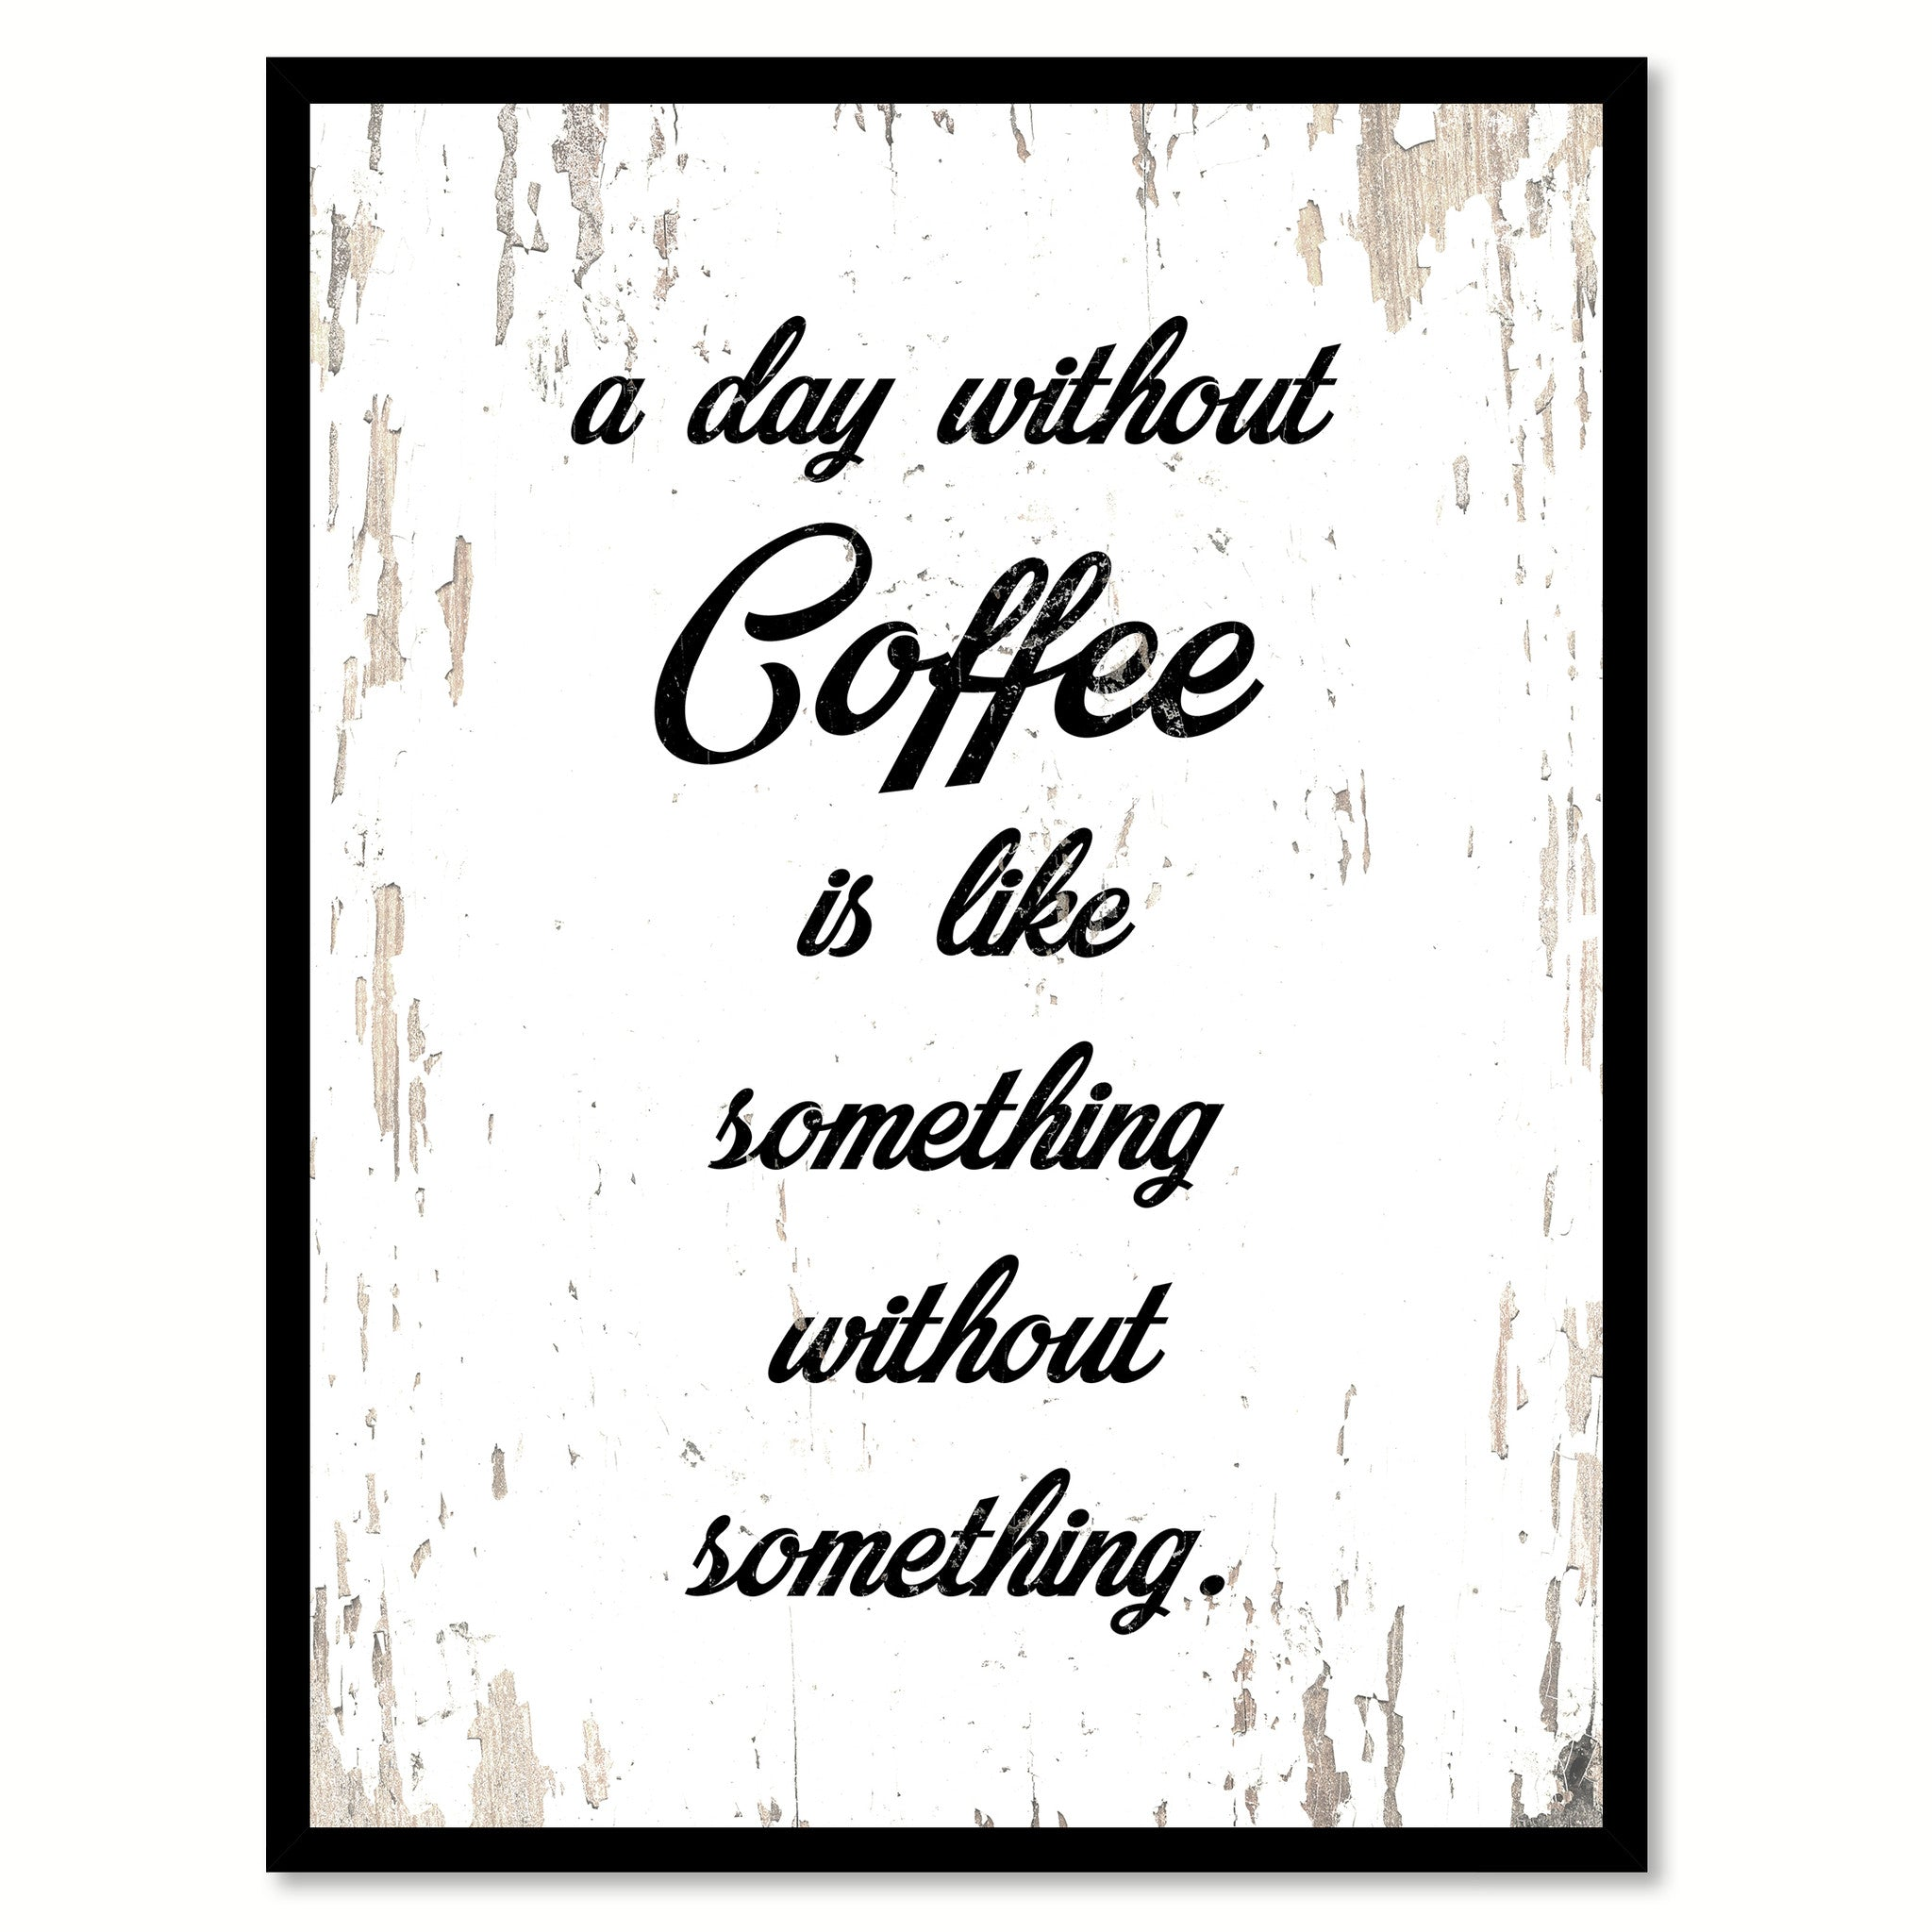 A Day Without Coffee Is Like Something Without Something Quote Saying Canvas Print with Picture Frame